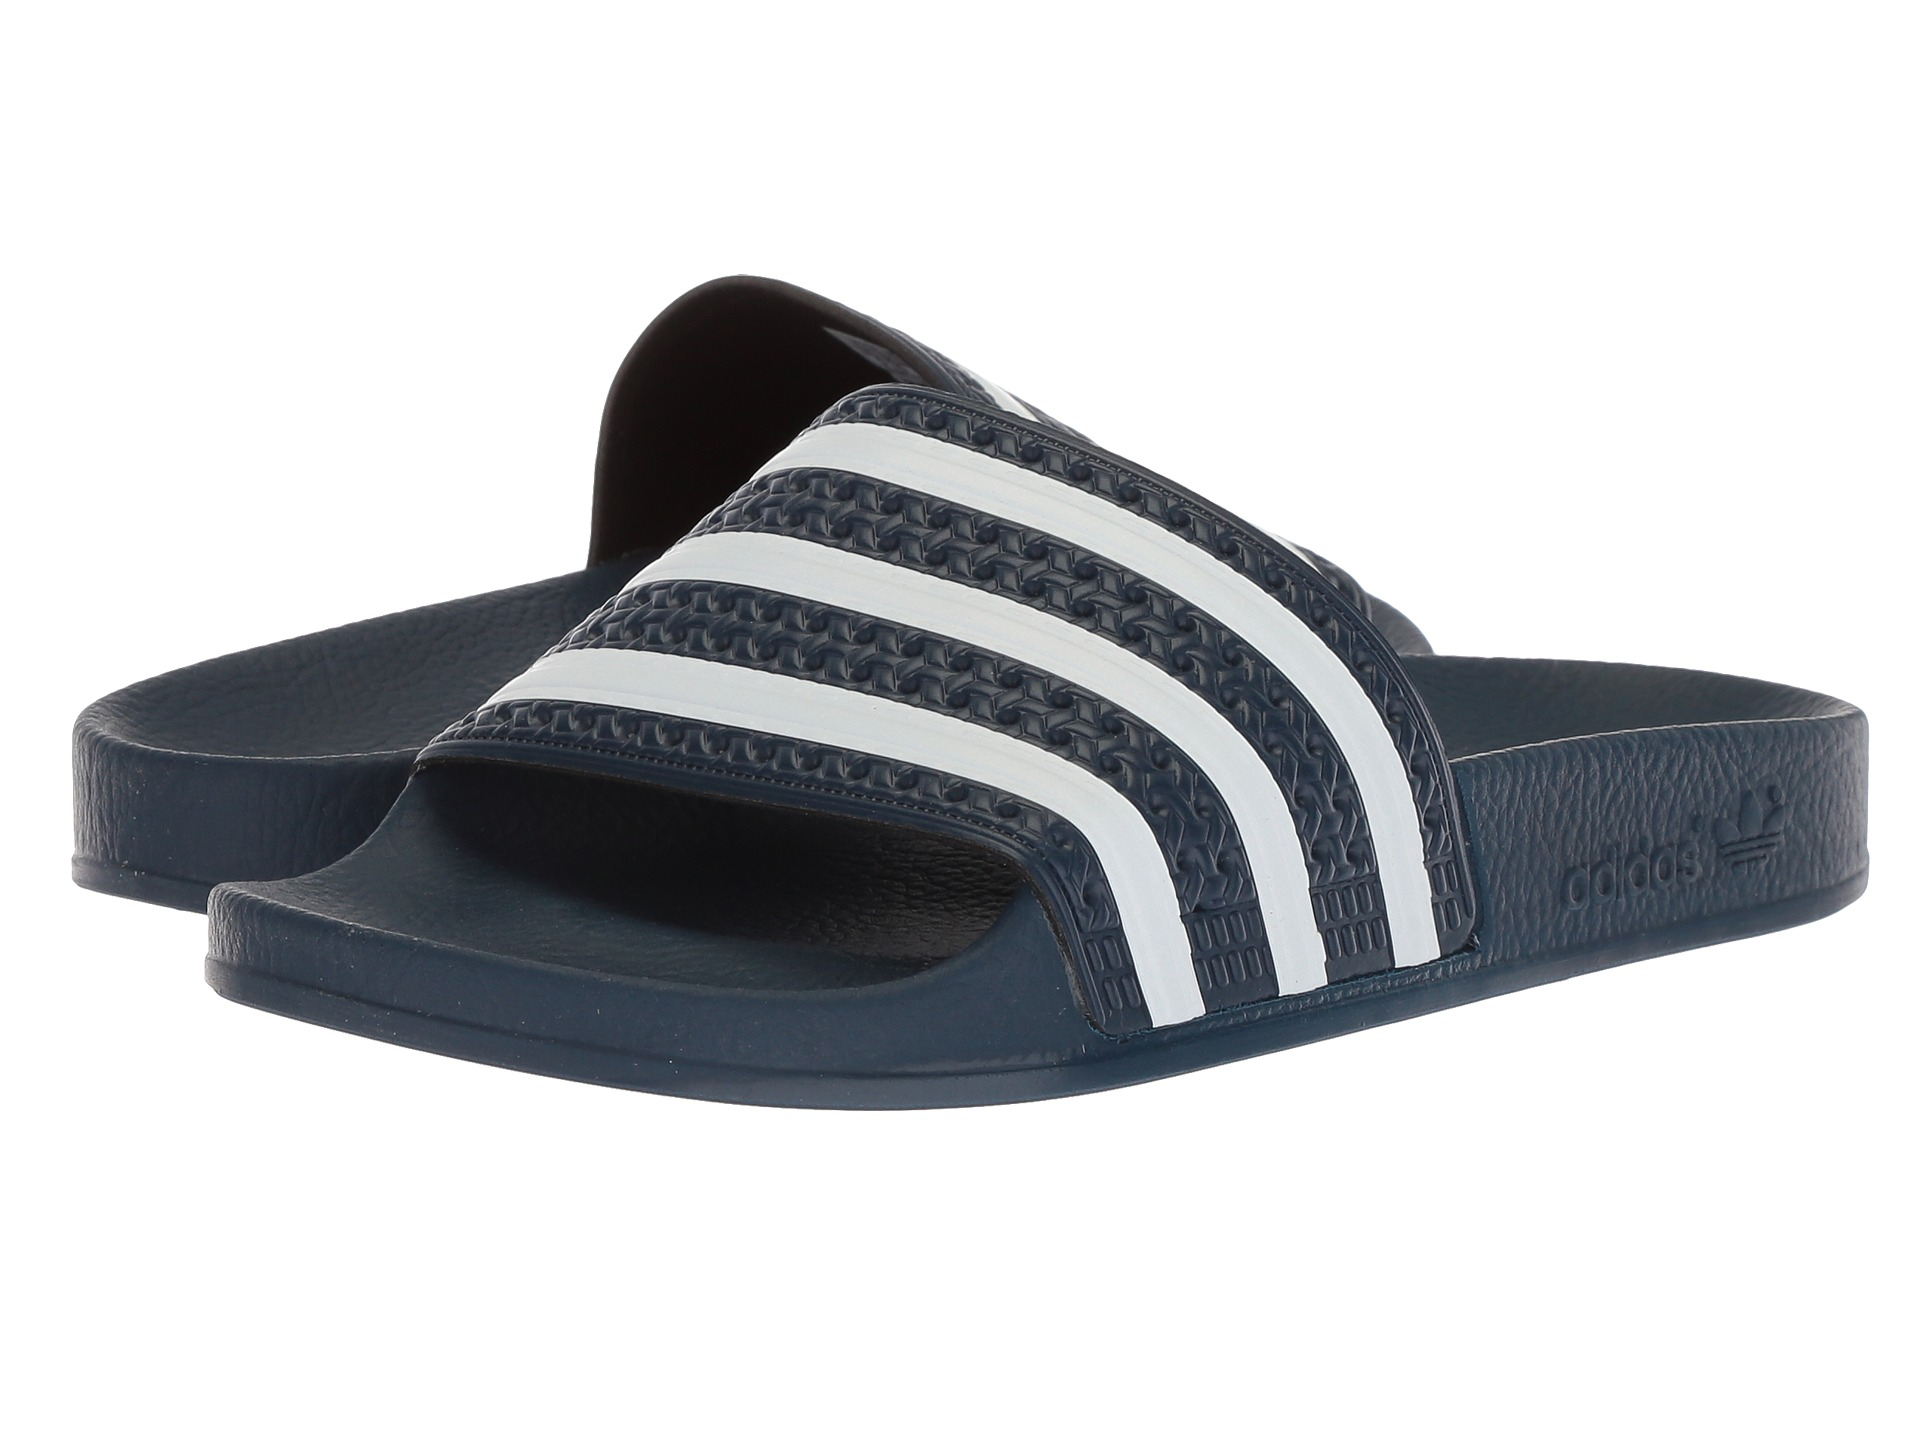 Lastest Adidas Originals Adilette Slides Womenu0026#39;s | JD Sports